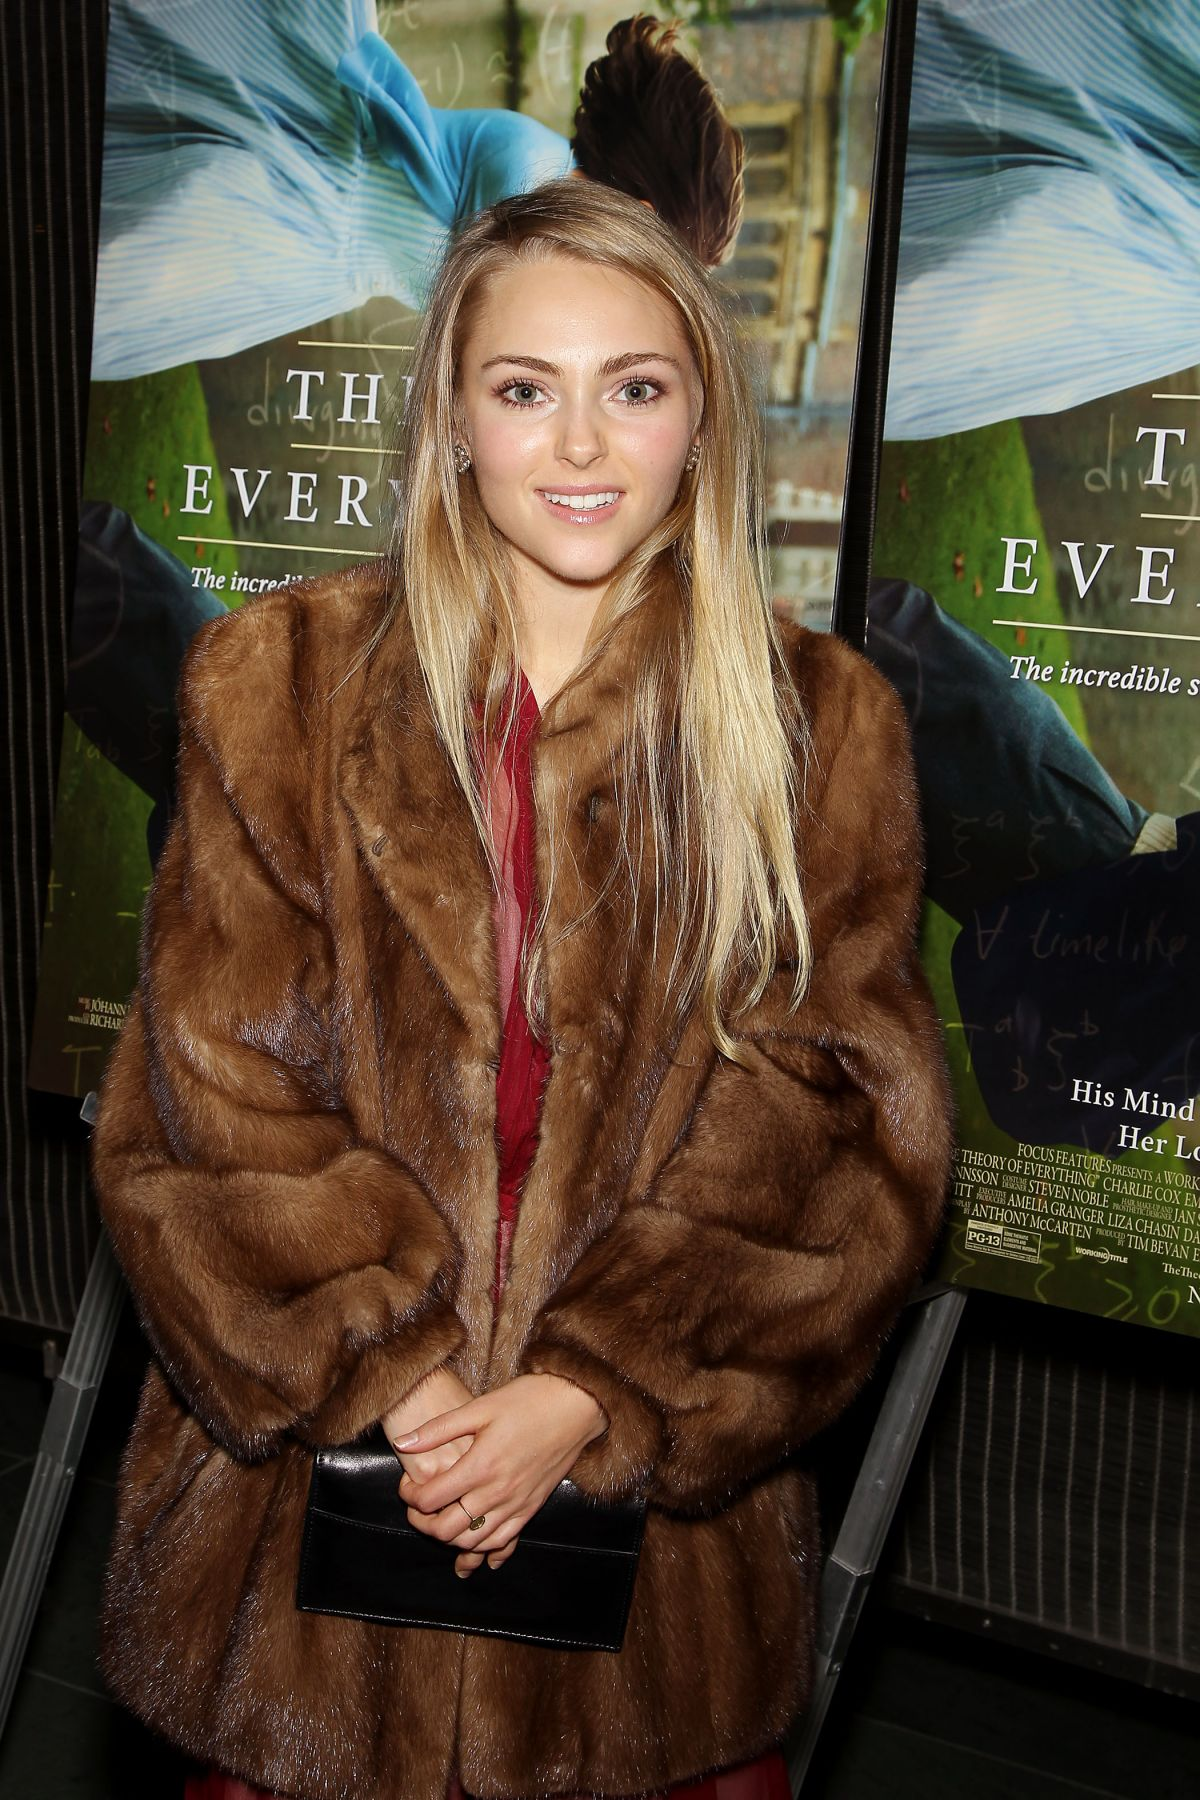 Sofia jamora,Americans! Gisele Has No Need For Your Puny Dollars Porno tube Homecoming queen,Chloe green